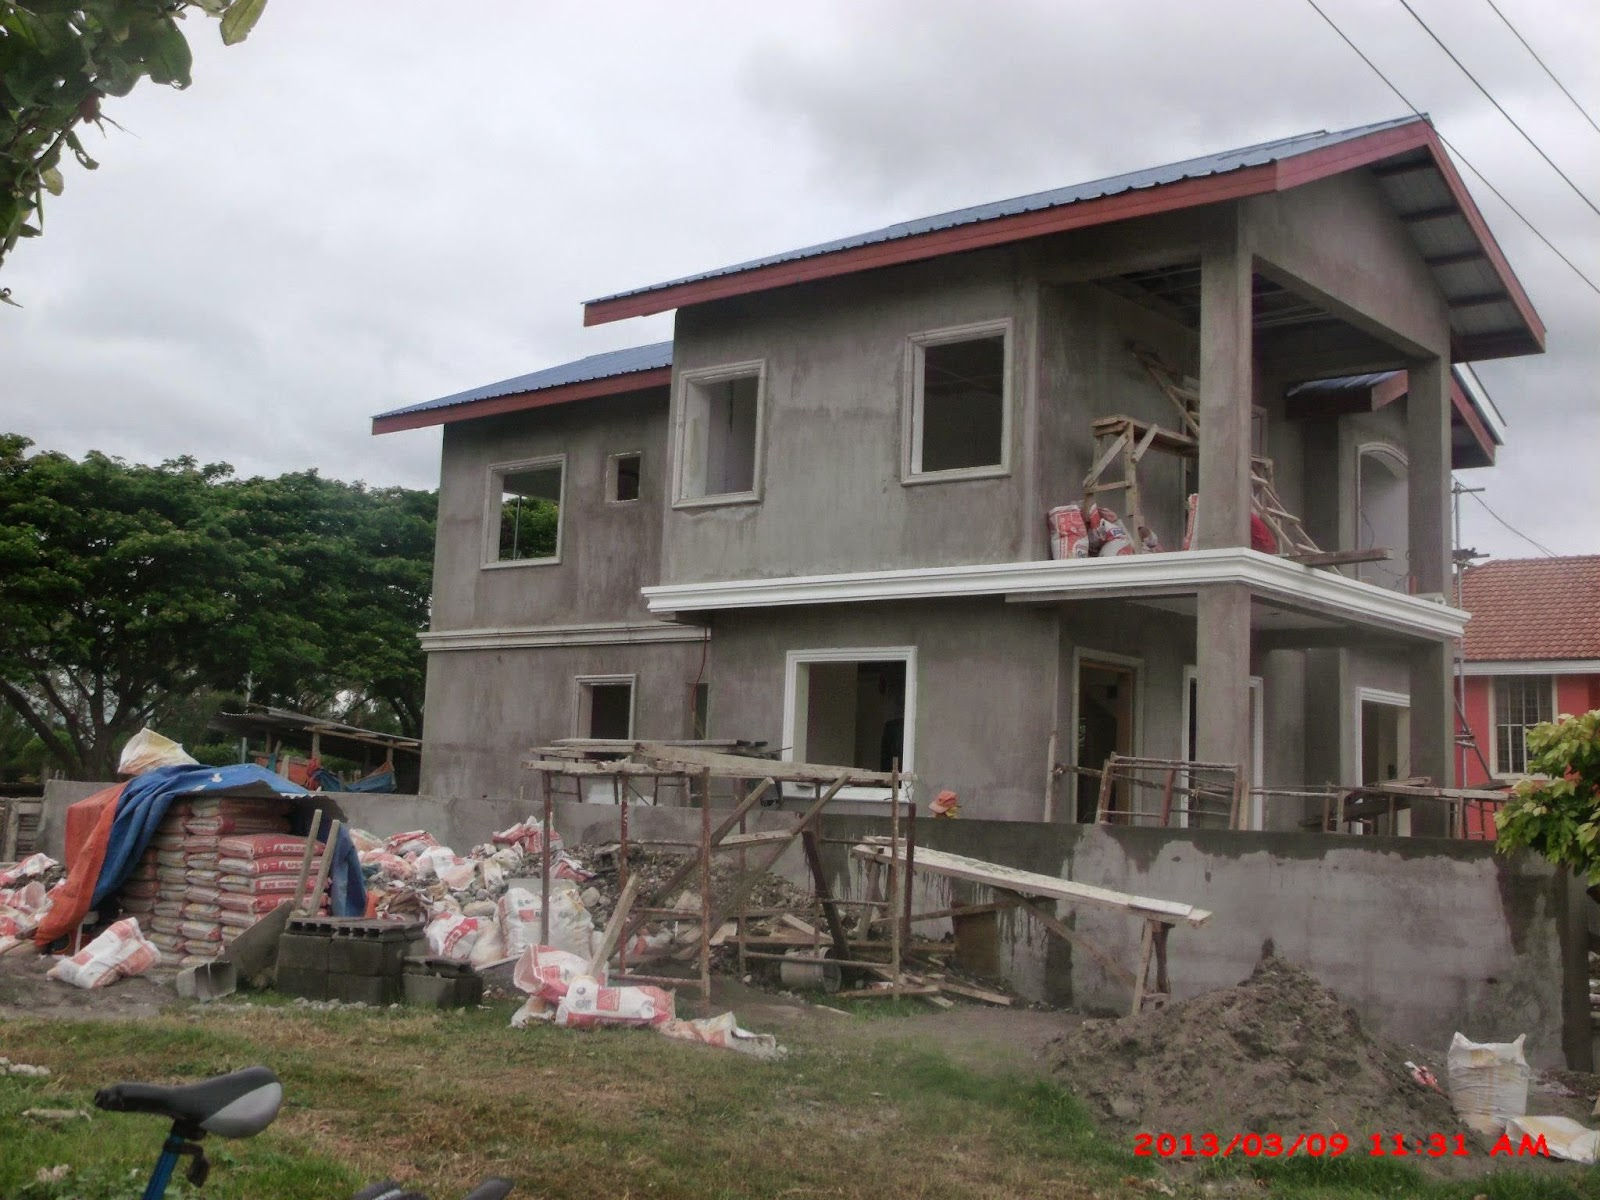 97+one+storey+house+design+philippines+iloilo+2+storey+house+designs+iloilo+philippines+house+plans+iloilo+house+plans+in+the+philippines+iloilo+two+storey+house+design+in+the+philippines+iloilo+philippines+house+design+2 - 19+ Simple Gate Design For Small House Philippines Images